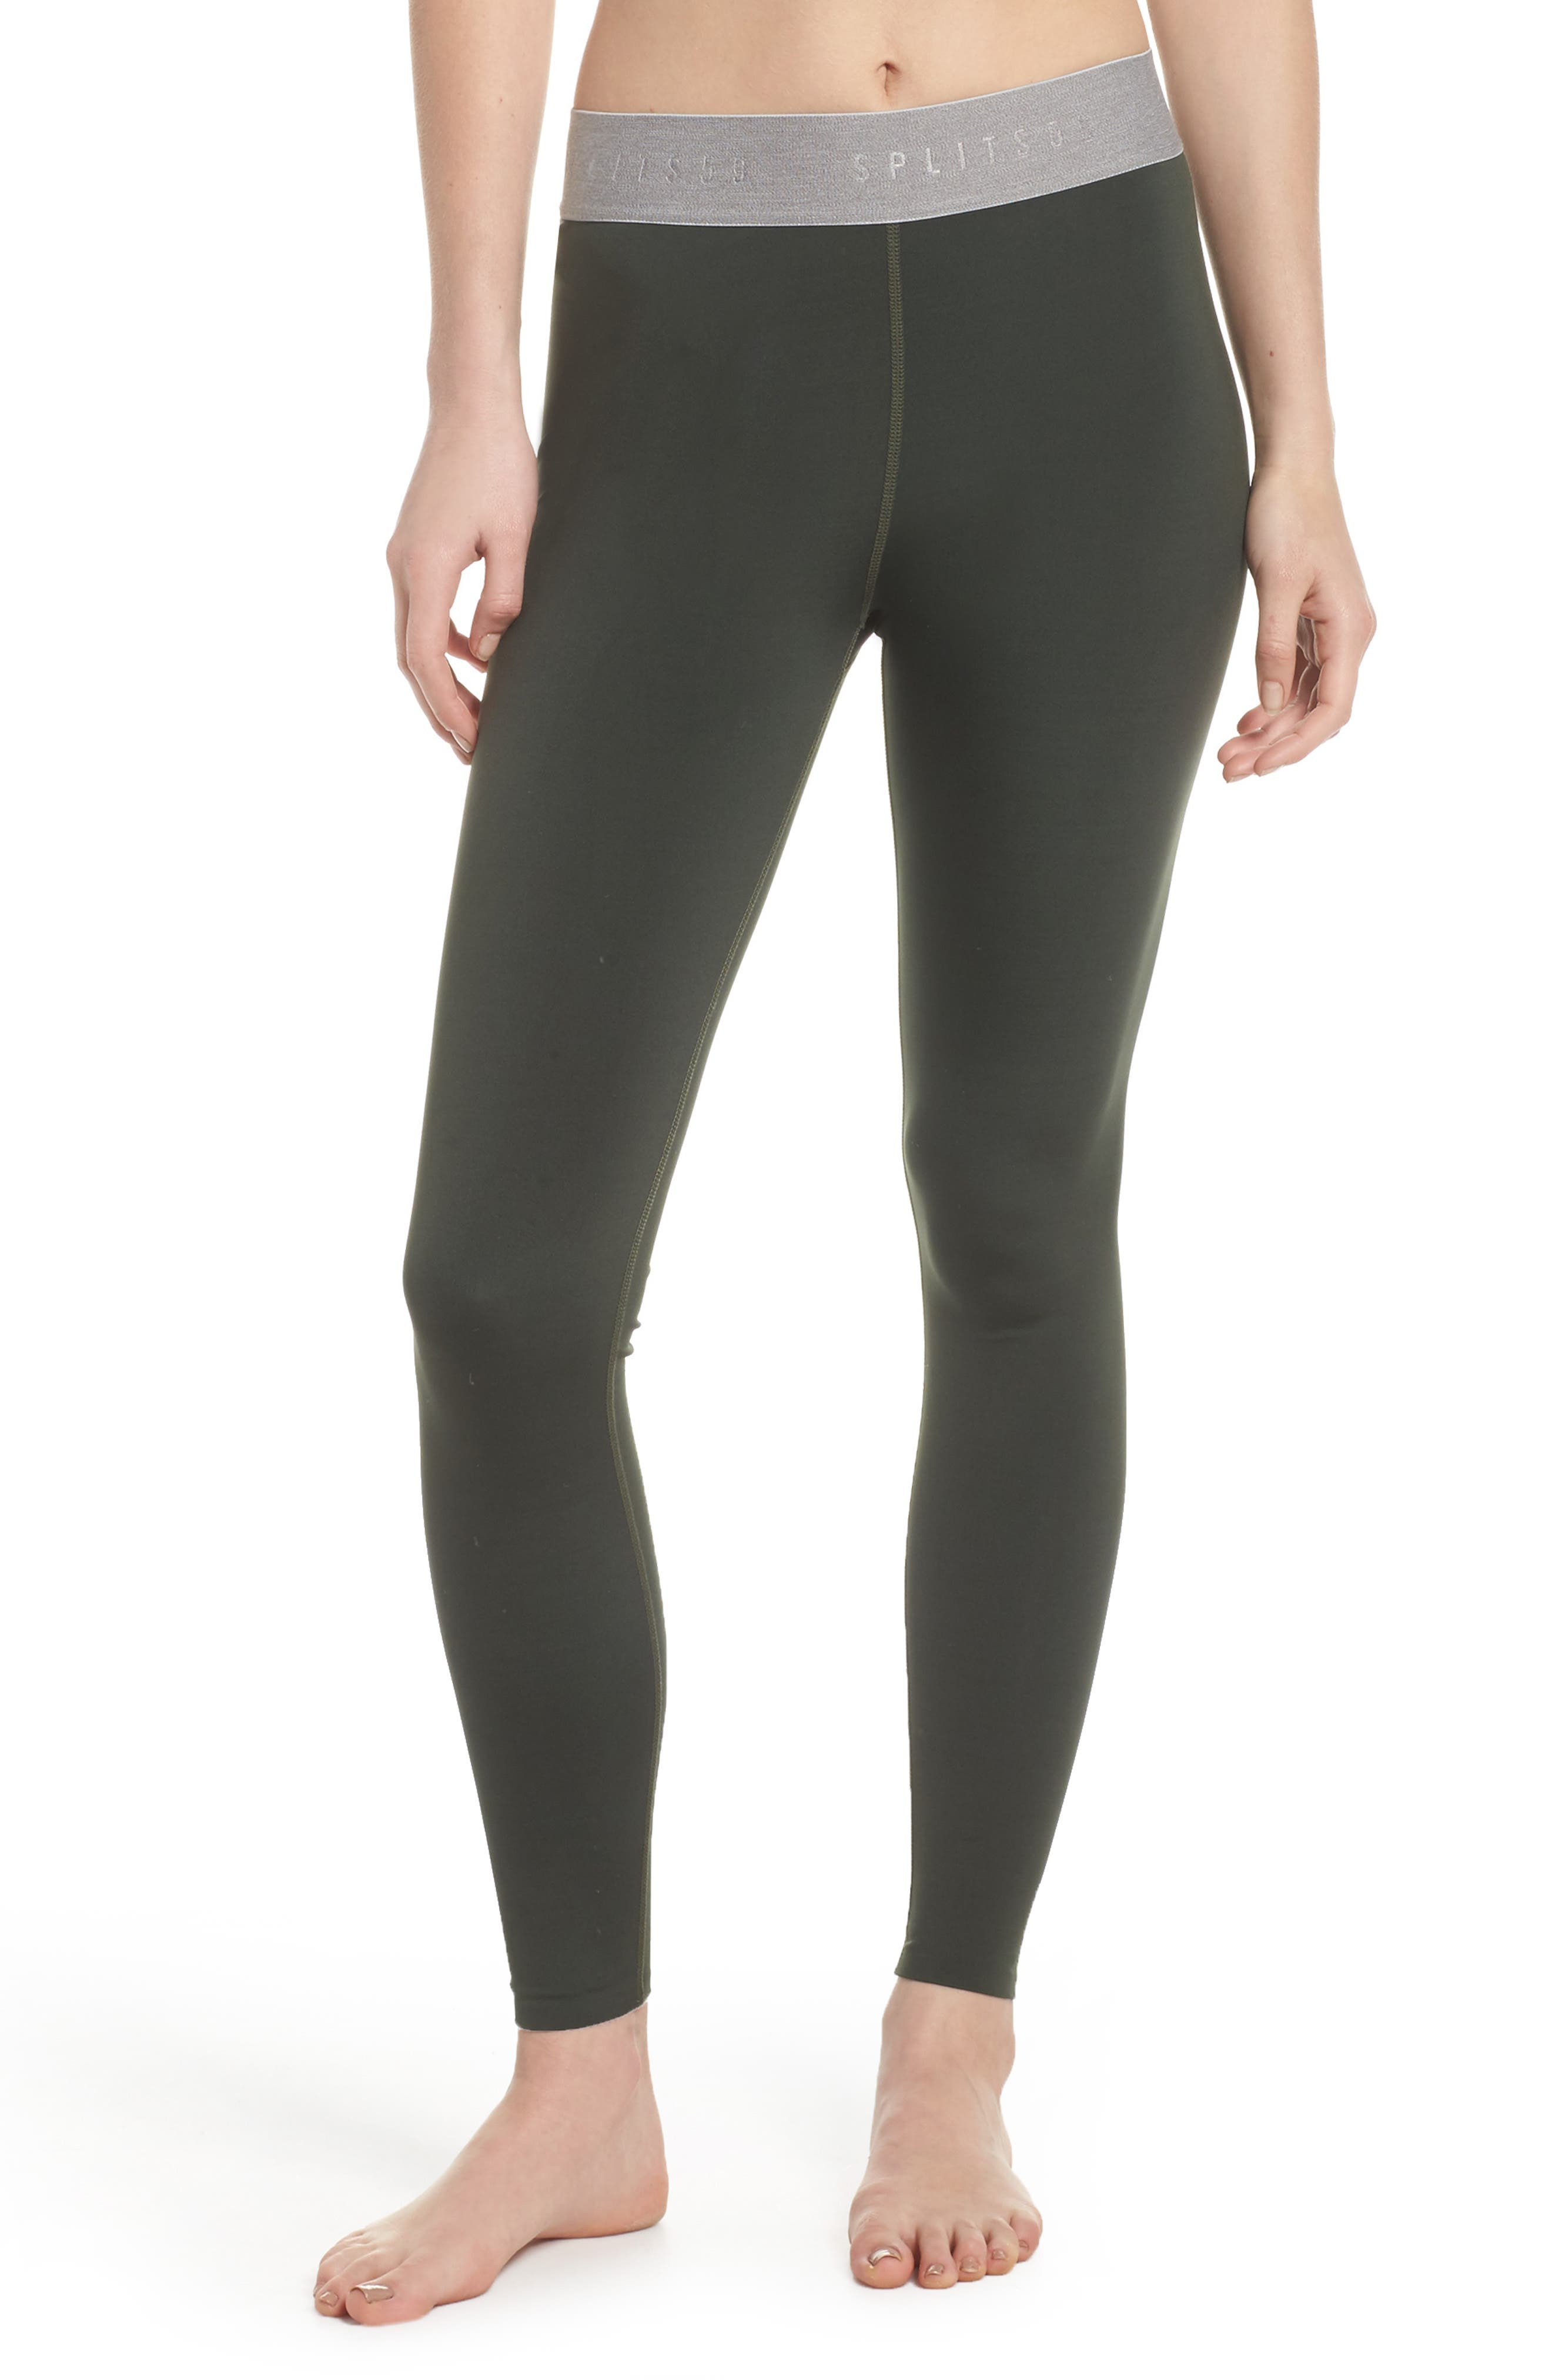 Tempo Ankle Tights,                             Main thumbnail 1, color,                             Army